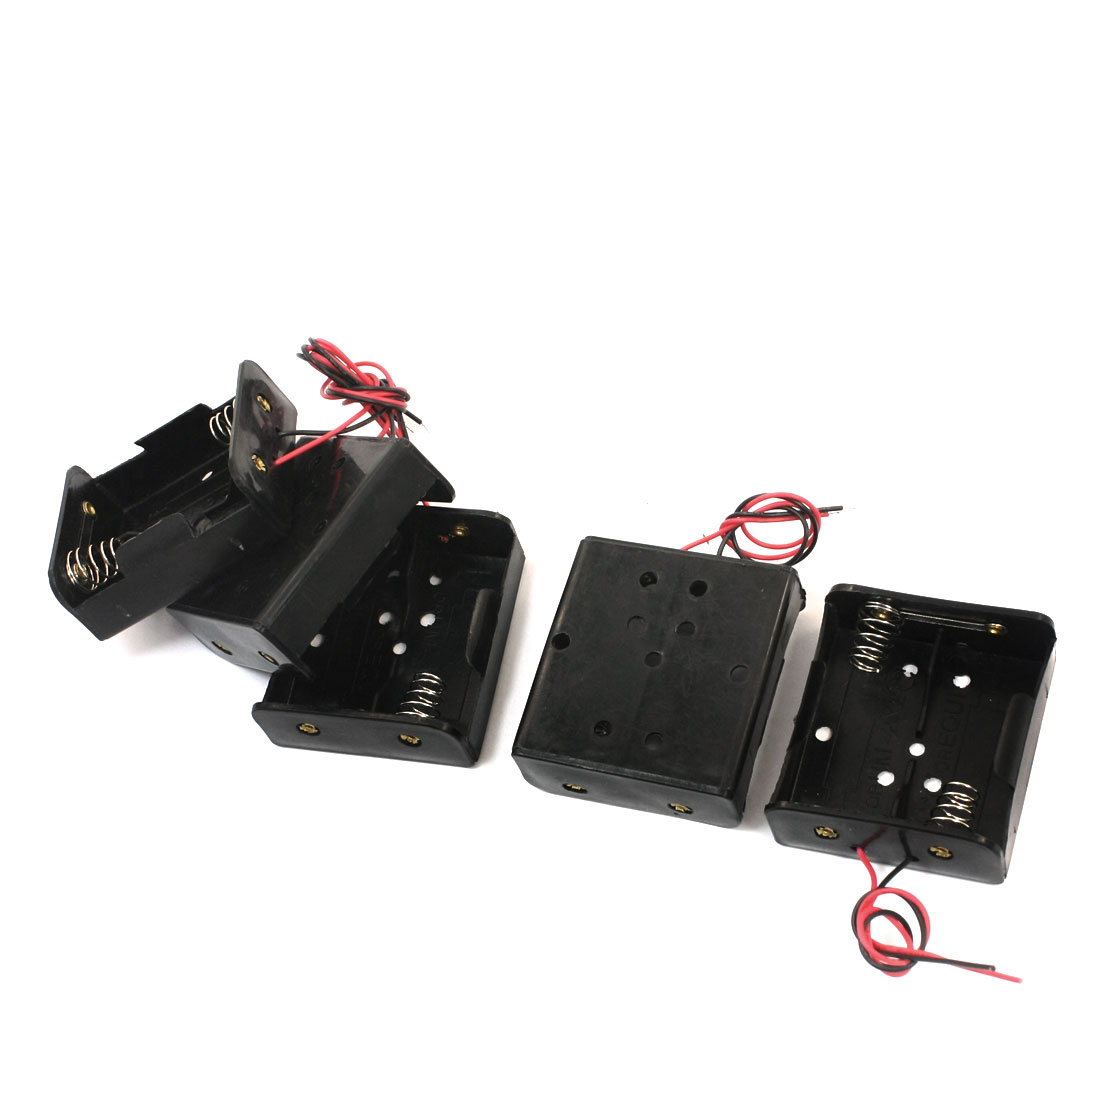 5 Pcs Dual Wire Spring Loaded Black Plastic Shell 2 x C 1.5V Battery Holder Case Cell Storage Box Container